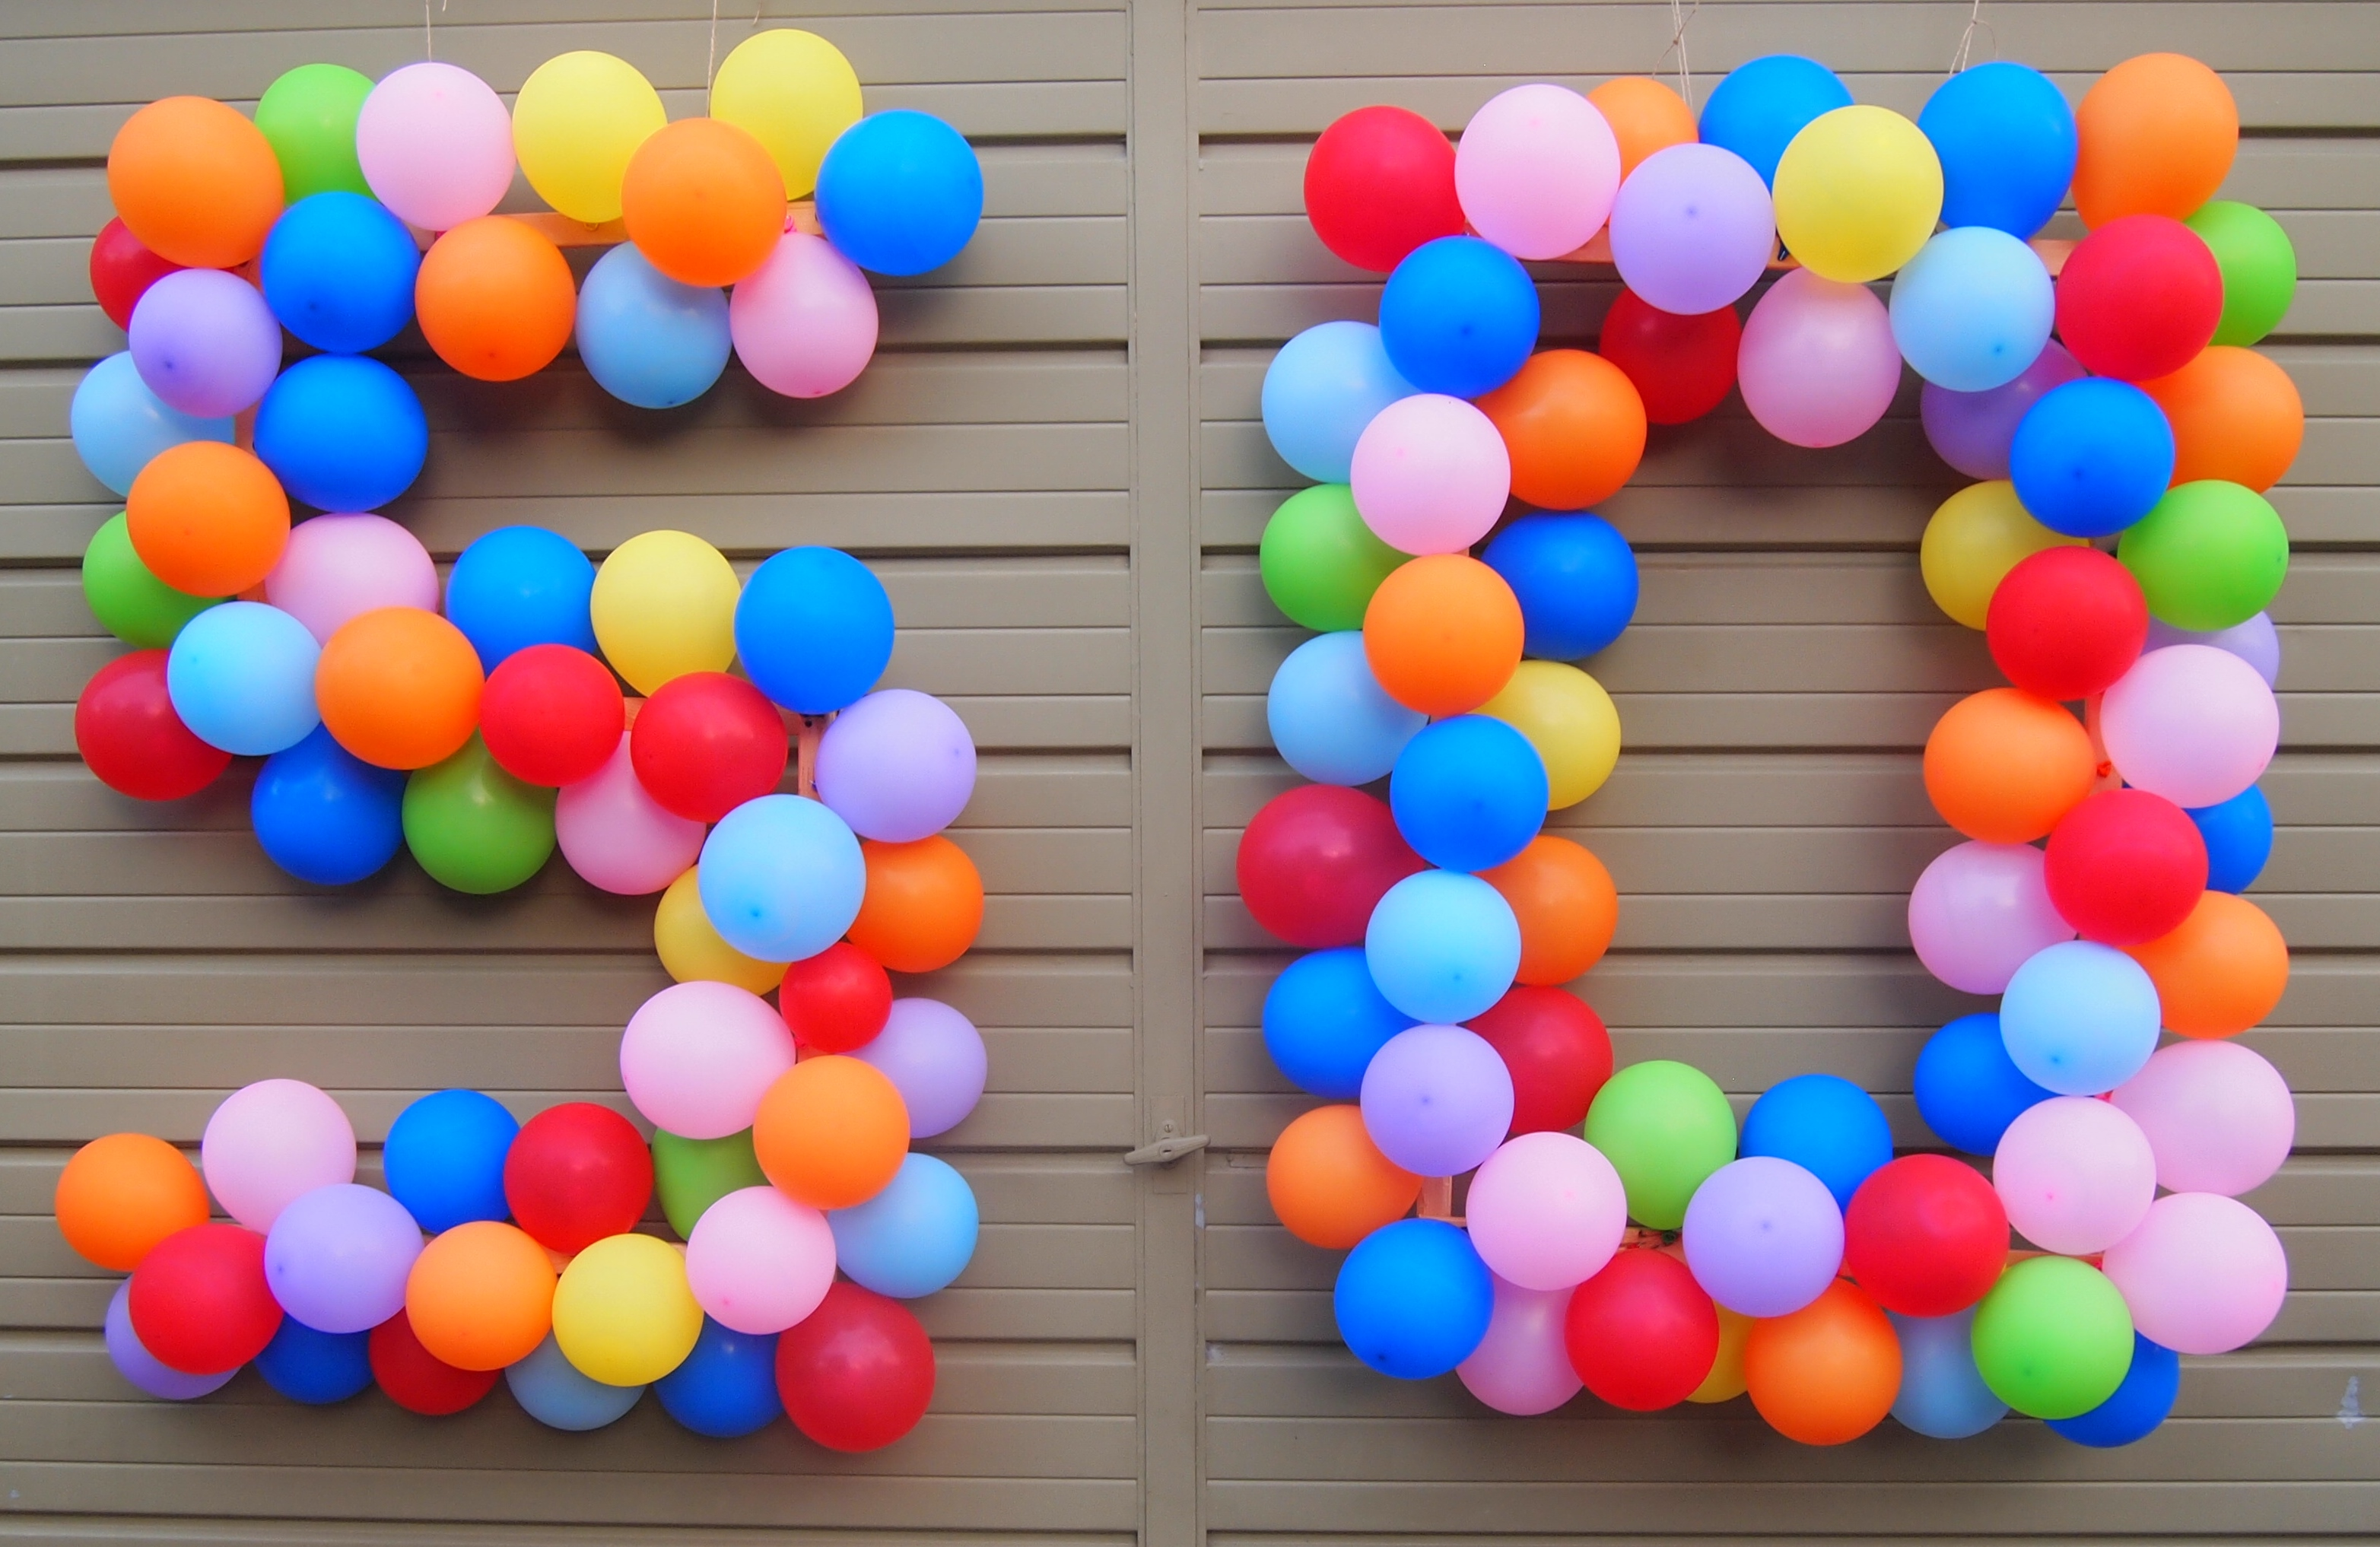 Fabulous At 50 Balloons - Copyright Jo-Ann Blondin